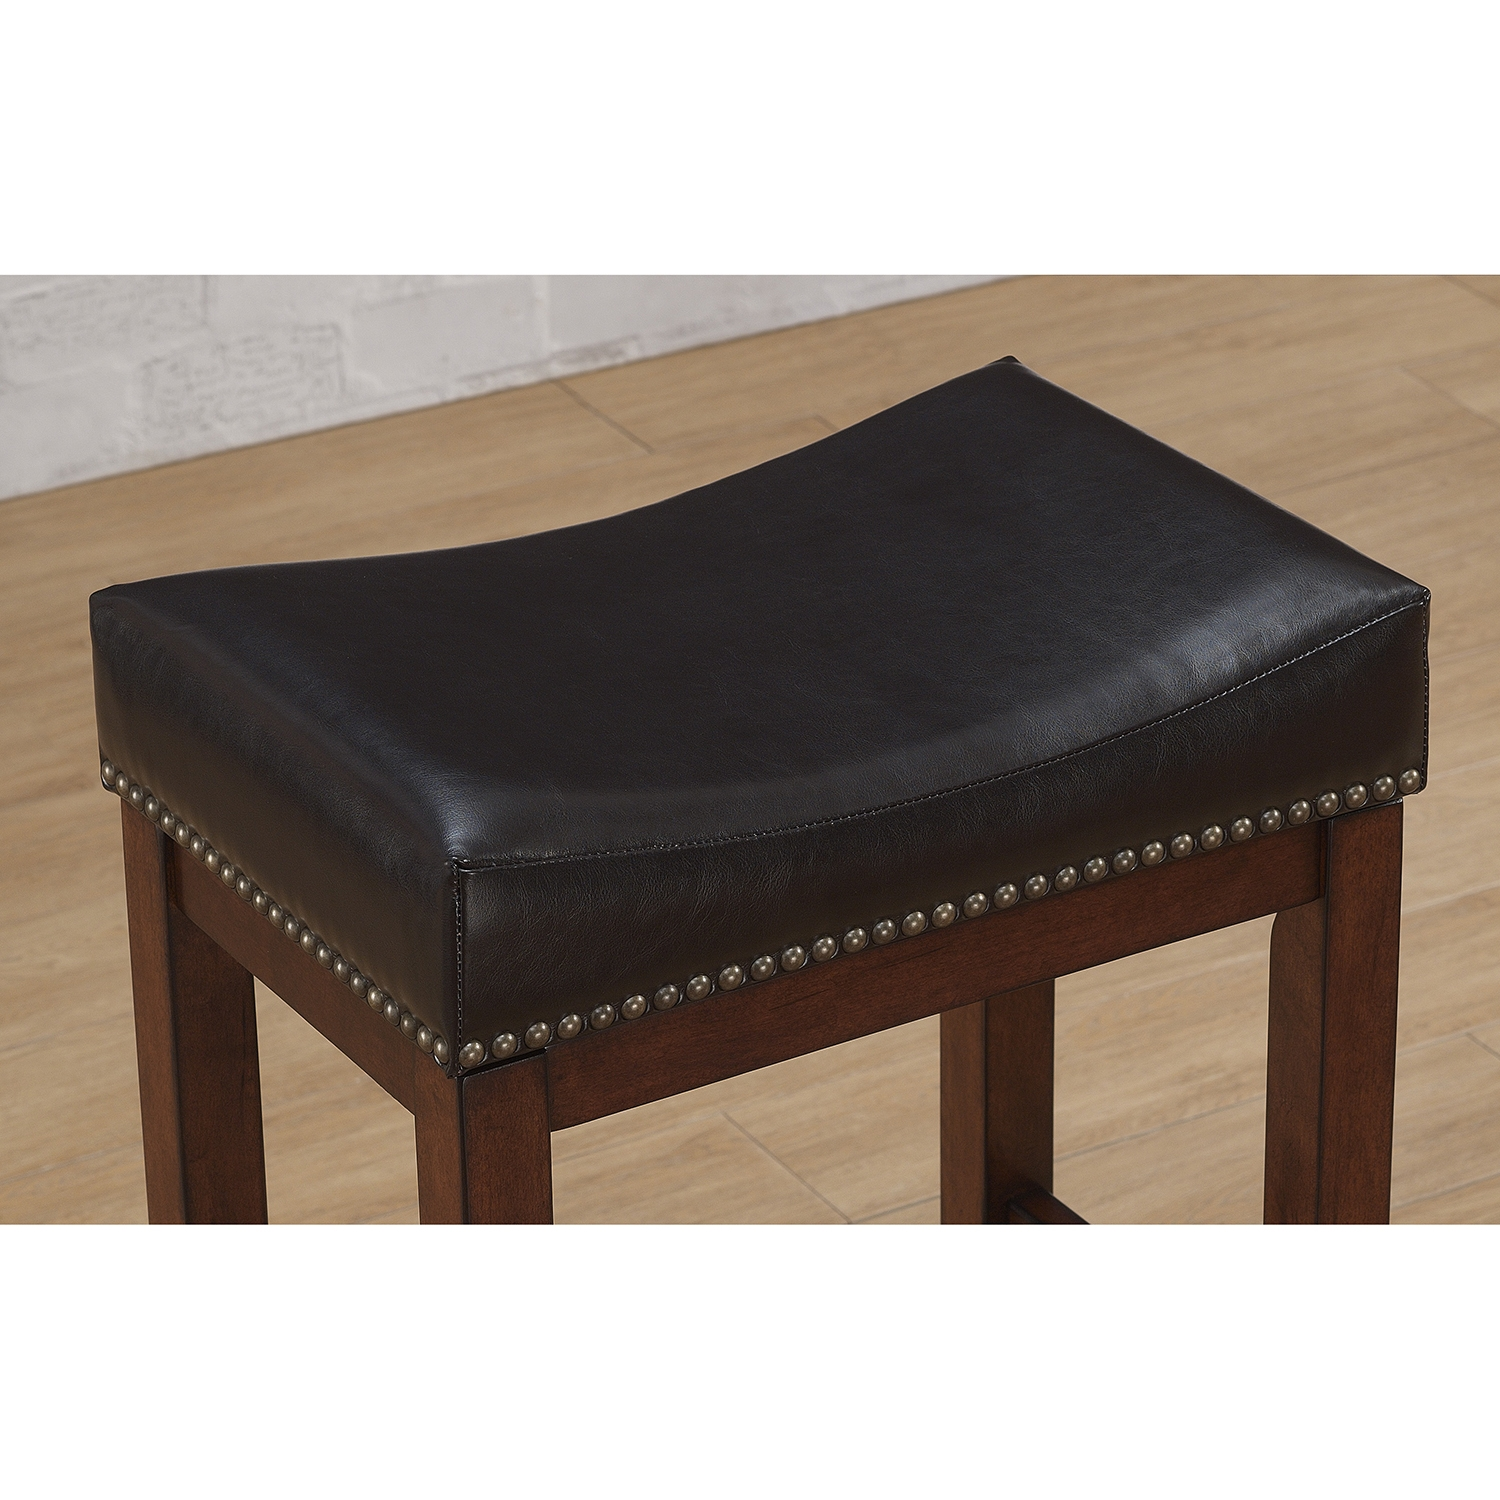 Jackson Saddle Seat Counter Stool - Medium Walnut, Dark Brown Bonded Leather - AW-B2-203-26L